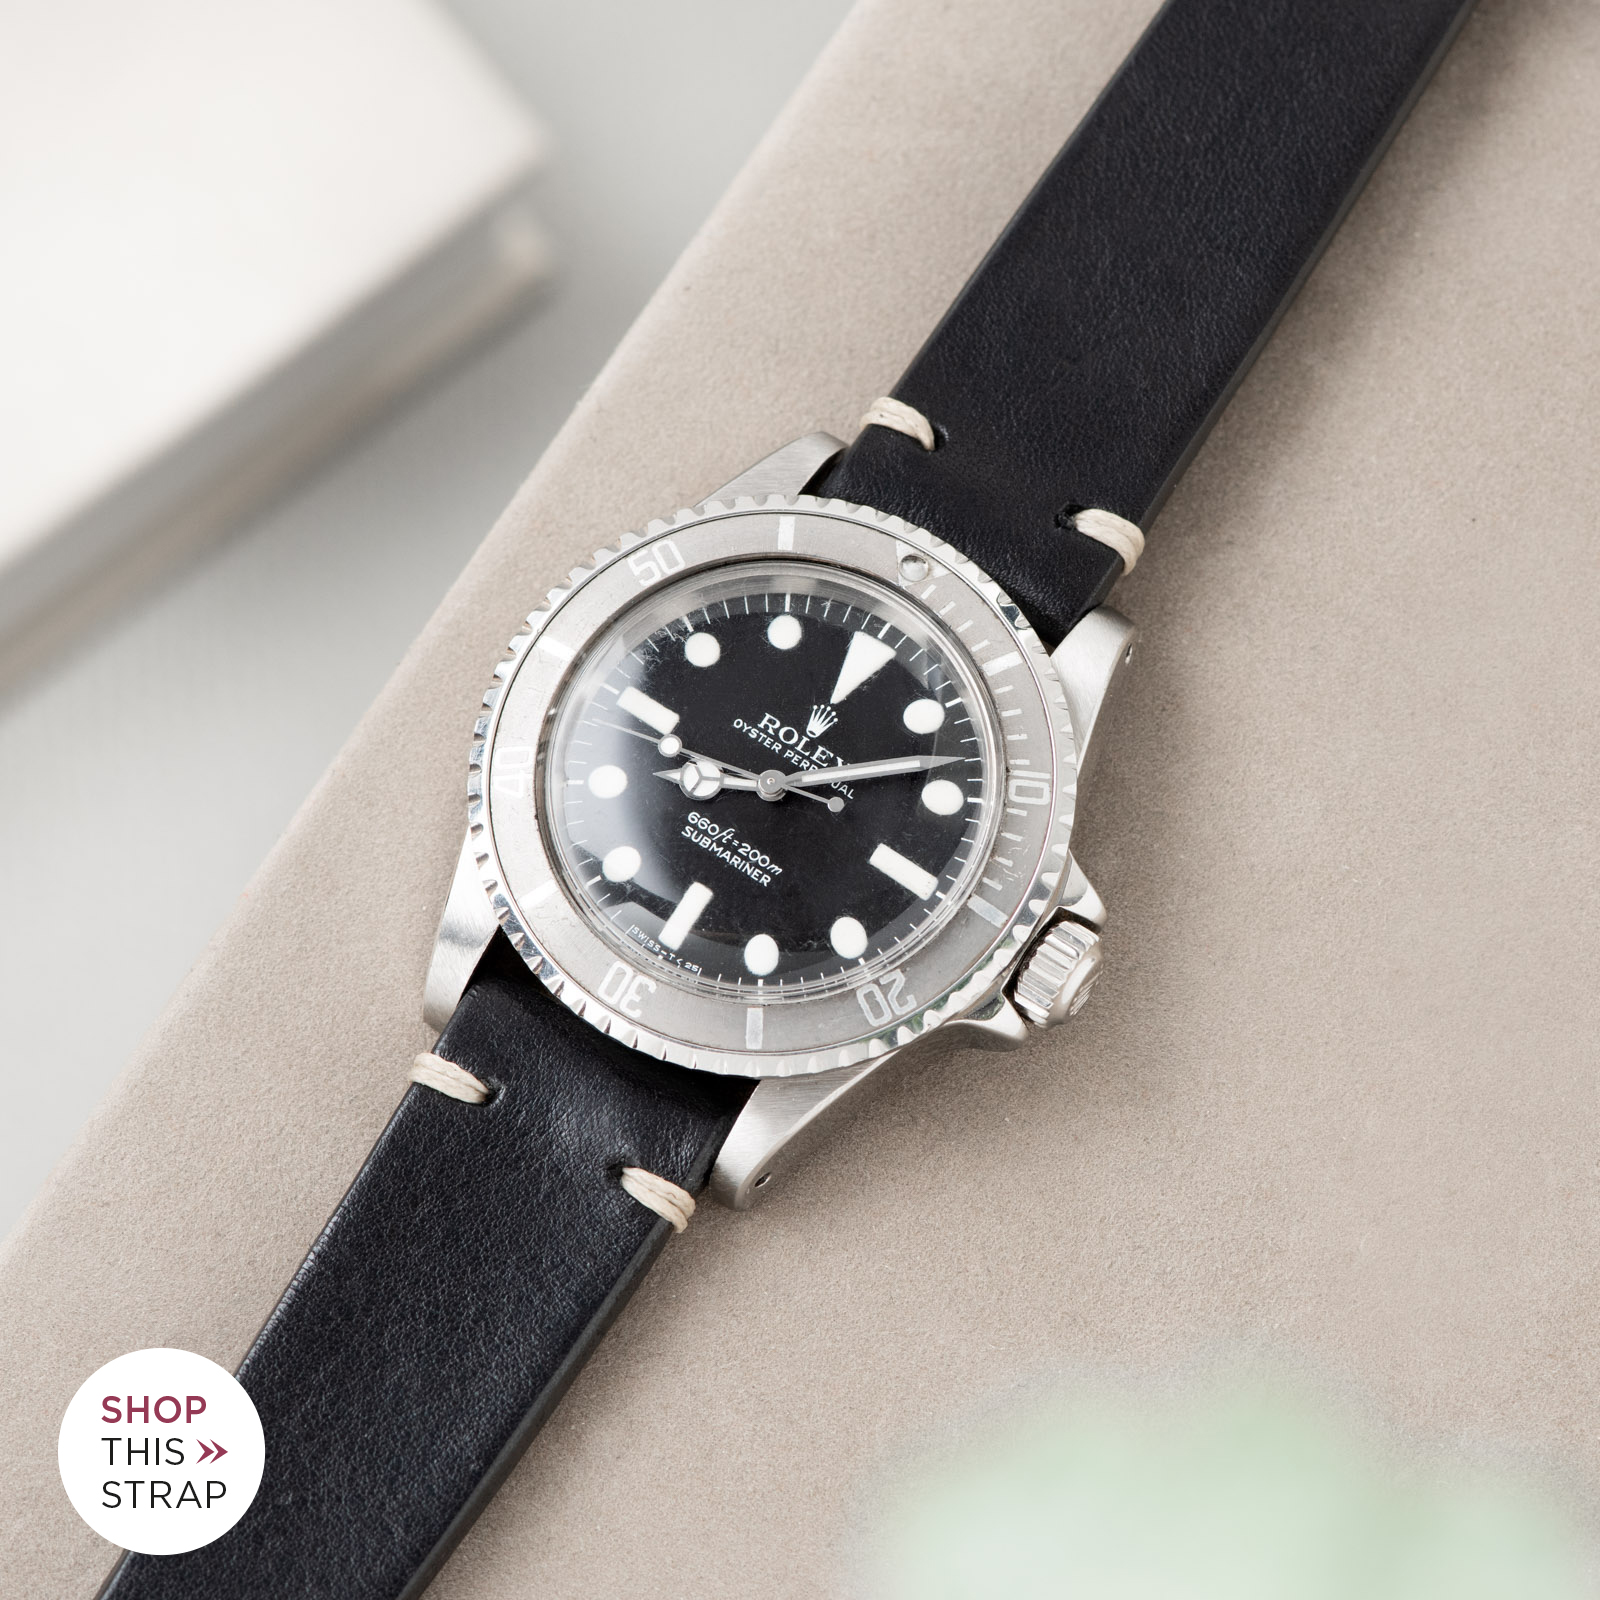 Bulang and Sons_Strap Guide_Rolex Submariner 5513_Black Leather Watch Strap